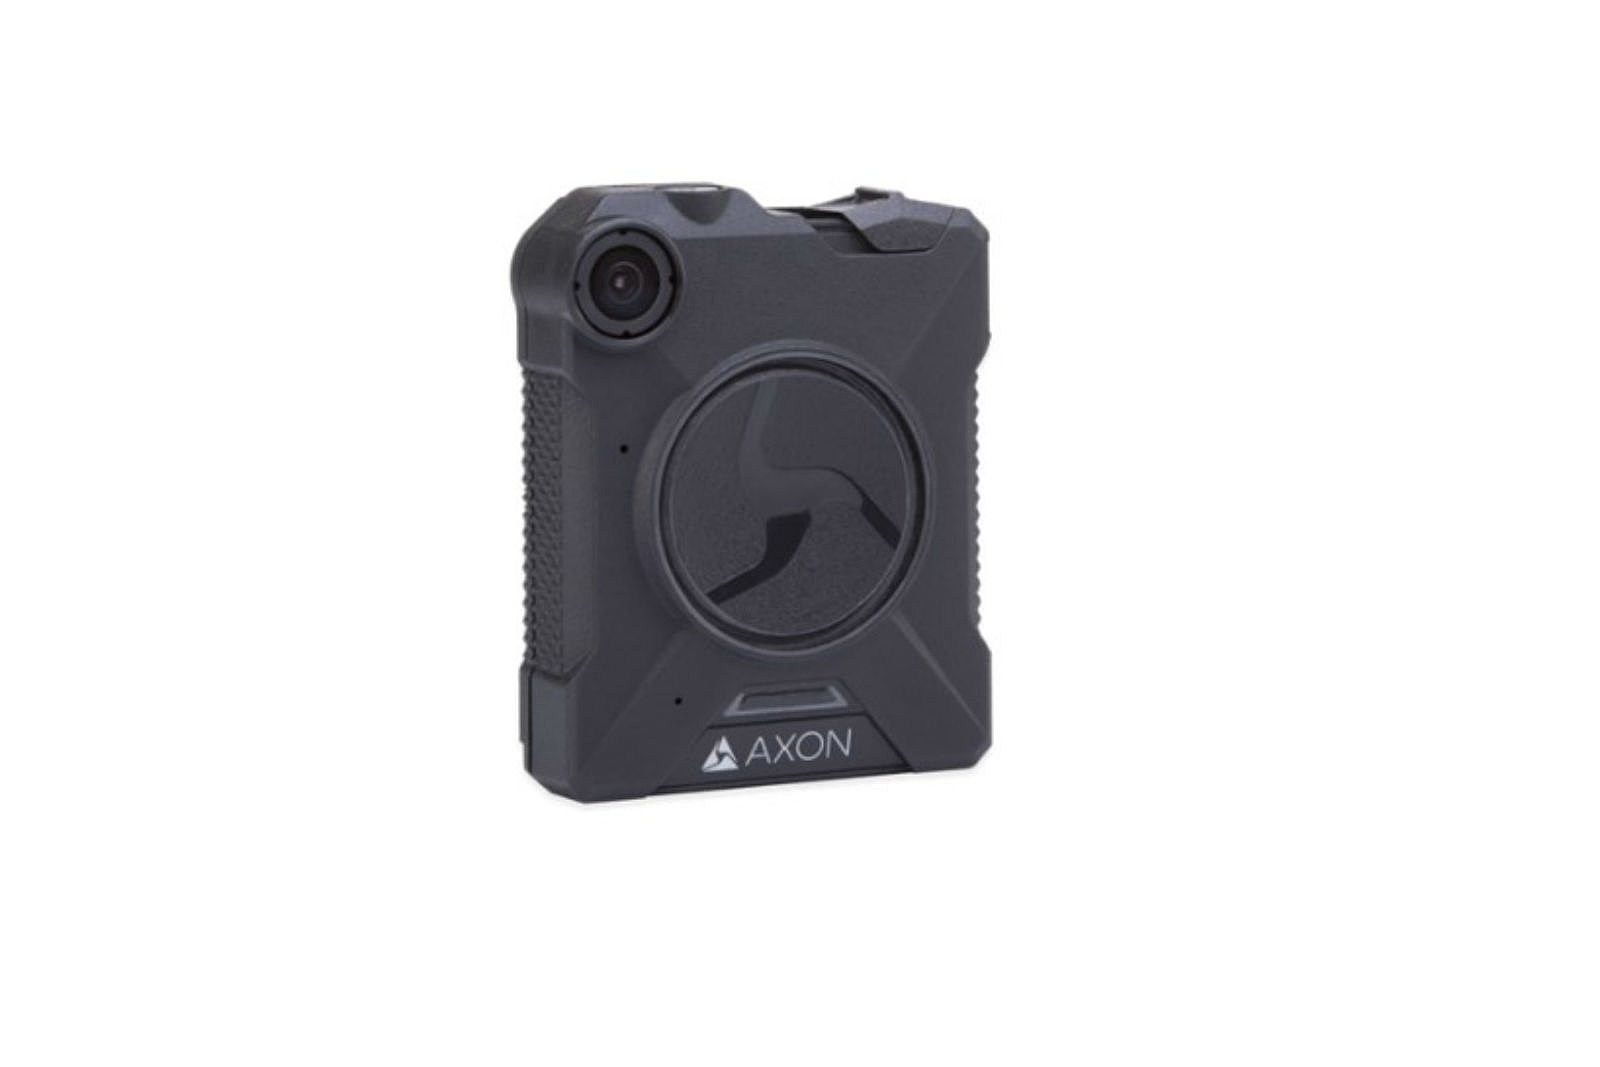 Louisiana State Police to Equip Troopers with Body Cameras